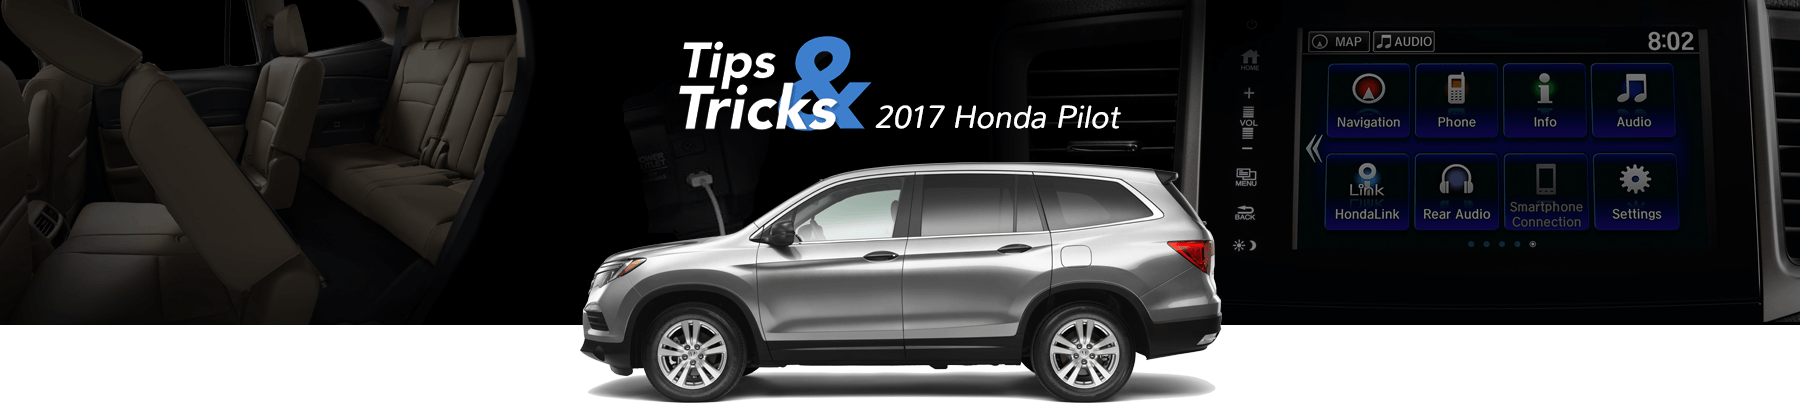 2017 Honda Pilot Tips and Tricks Banner